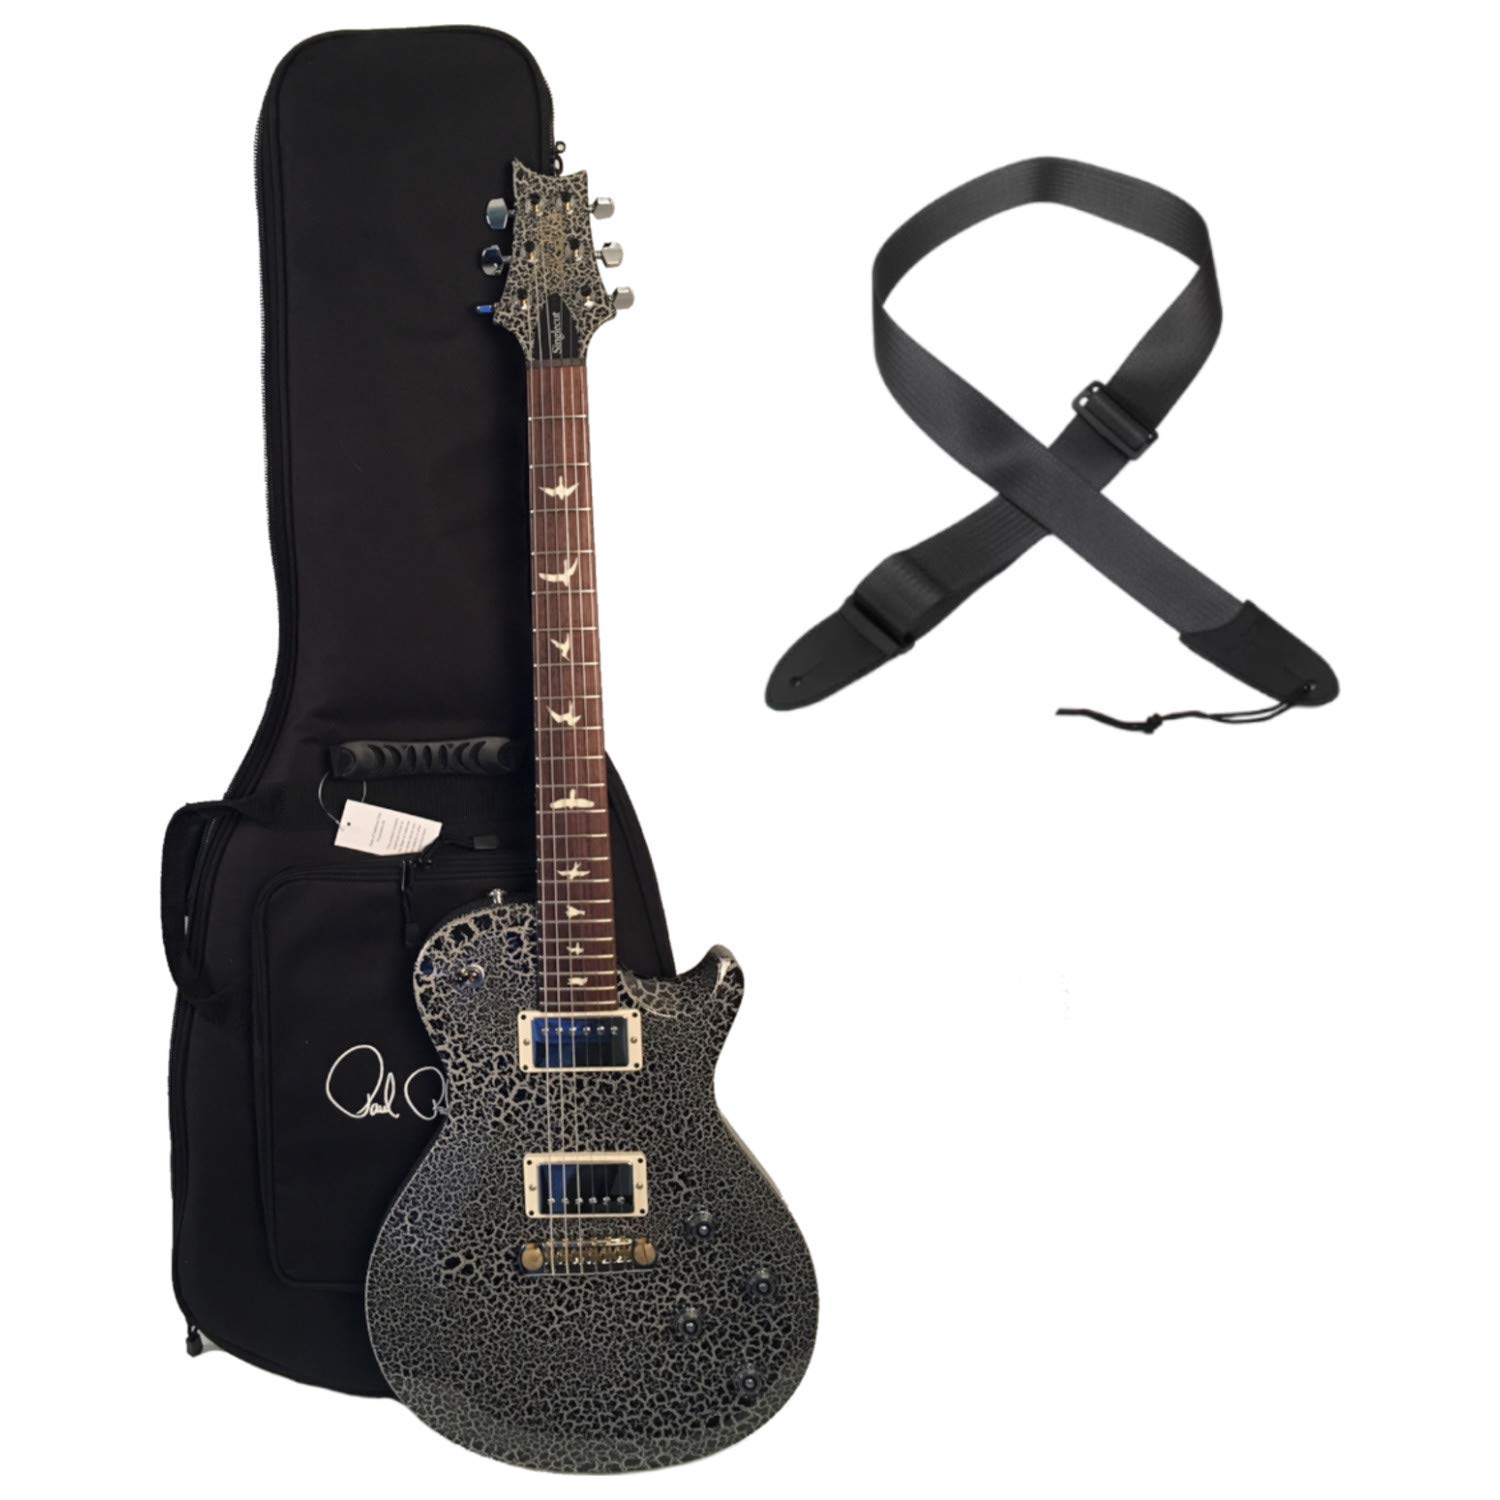 Cheap PRS S2M2F2HSIBA Singlecut Custom Color Crackle Electric Guitar w/Bag and Strap Black Friday & Cyber Monday 2019